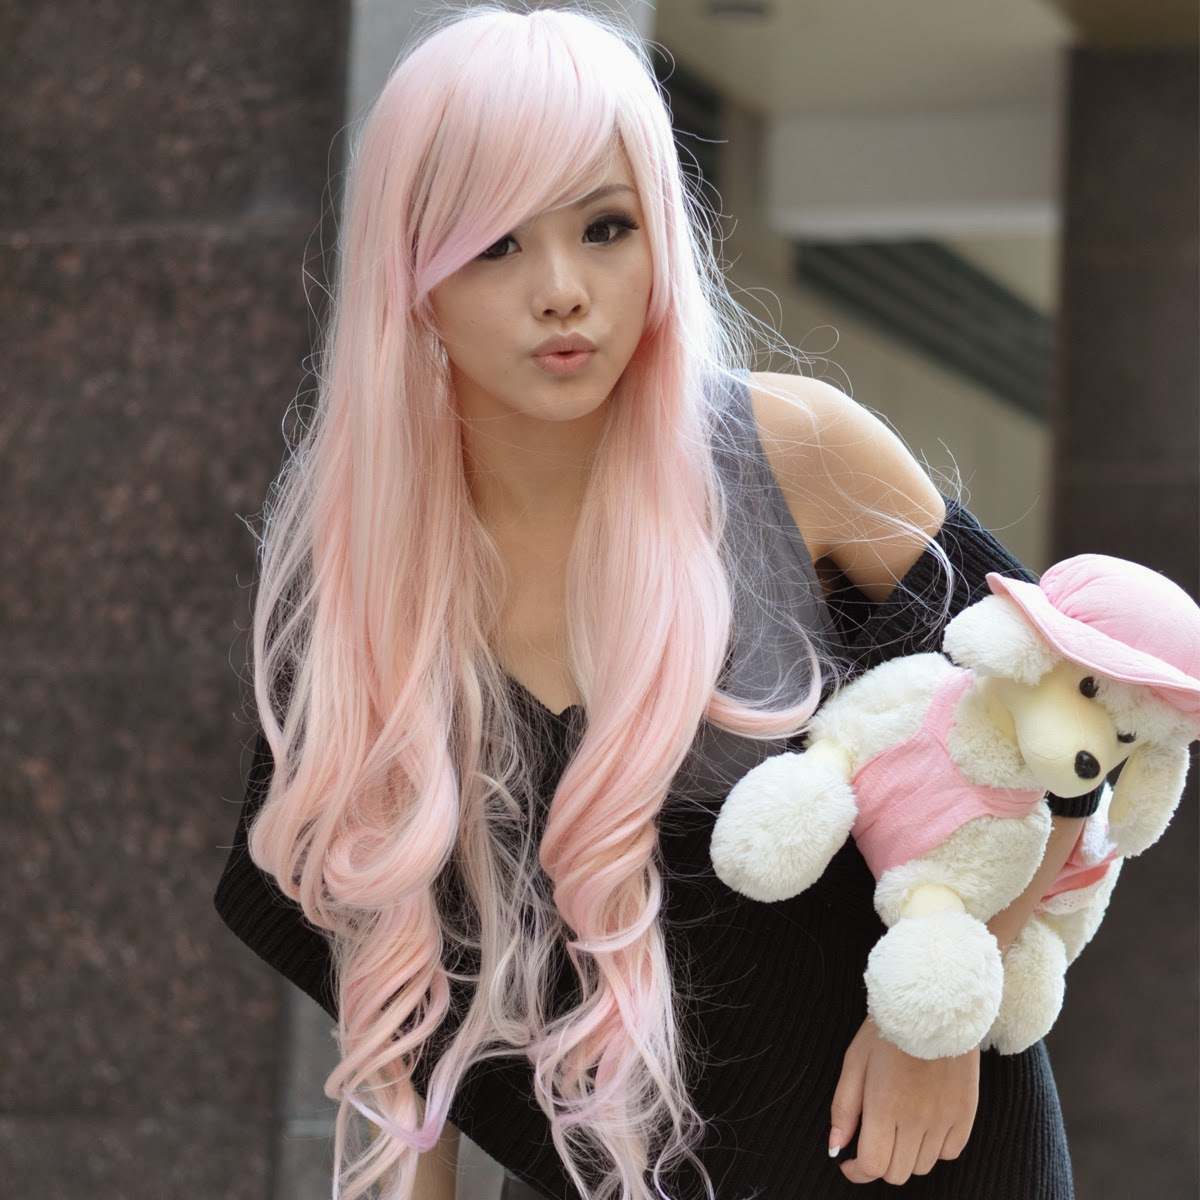 Anime Wigs Give That Defining Look To An Anime Character